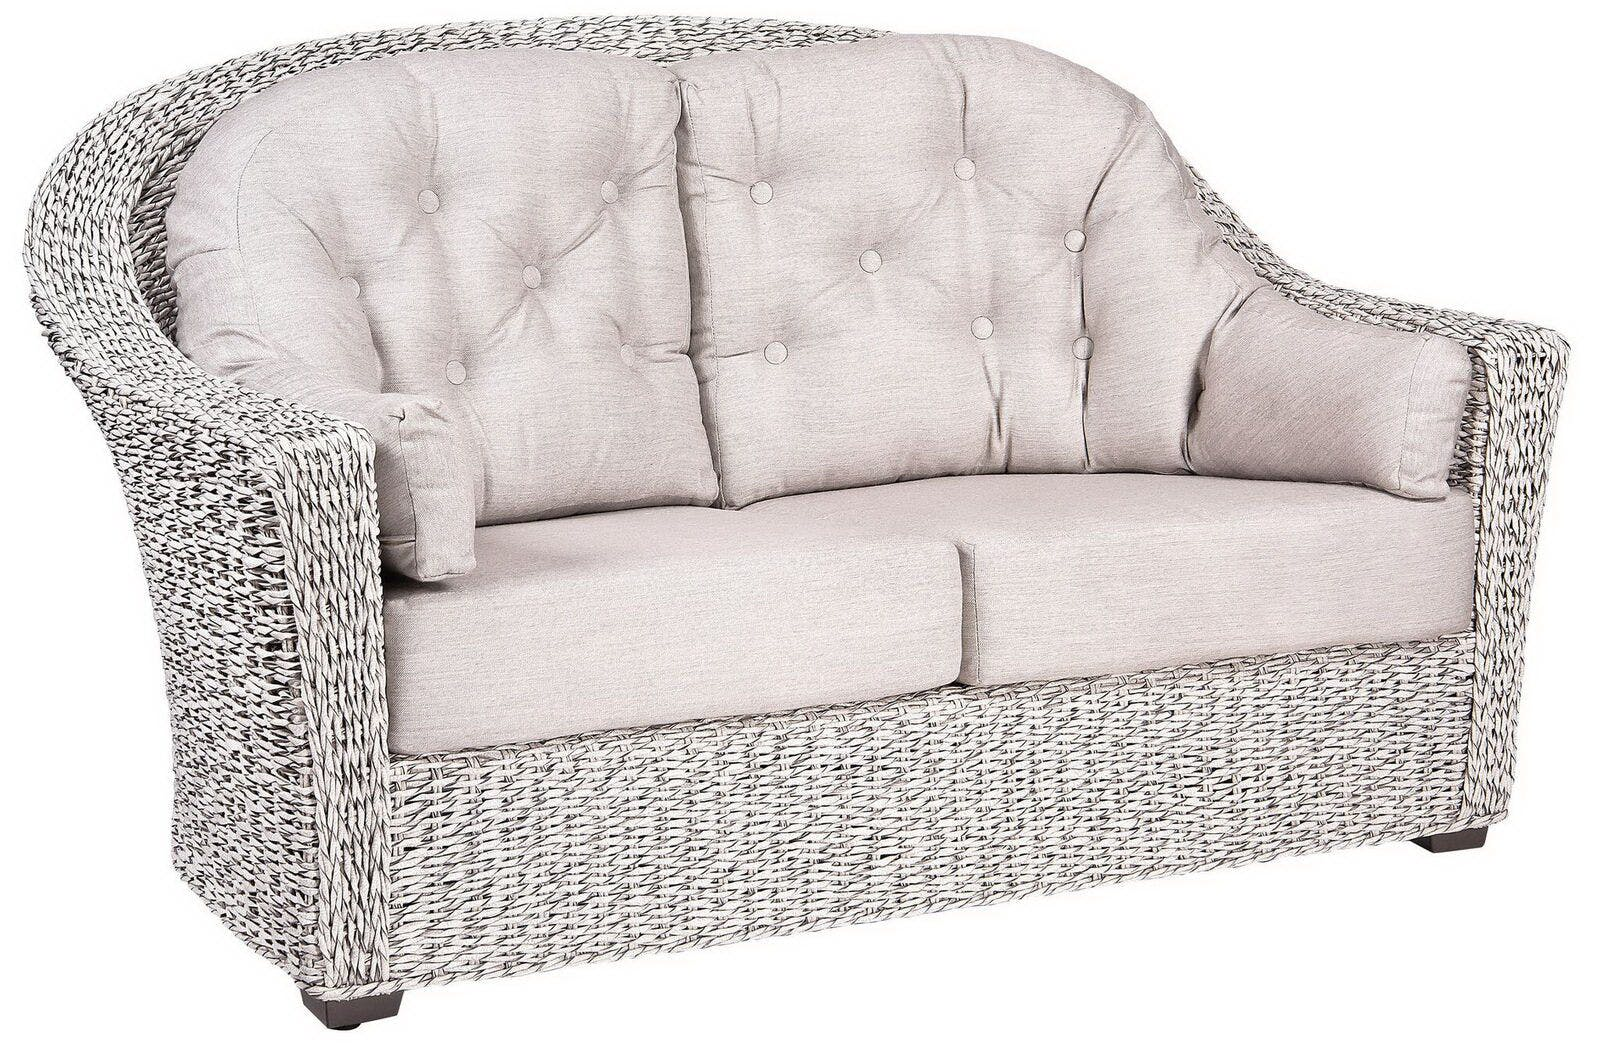 Picture of: Fh Casual Custom Isabella Love Seat White The Fire House Casual Living Store